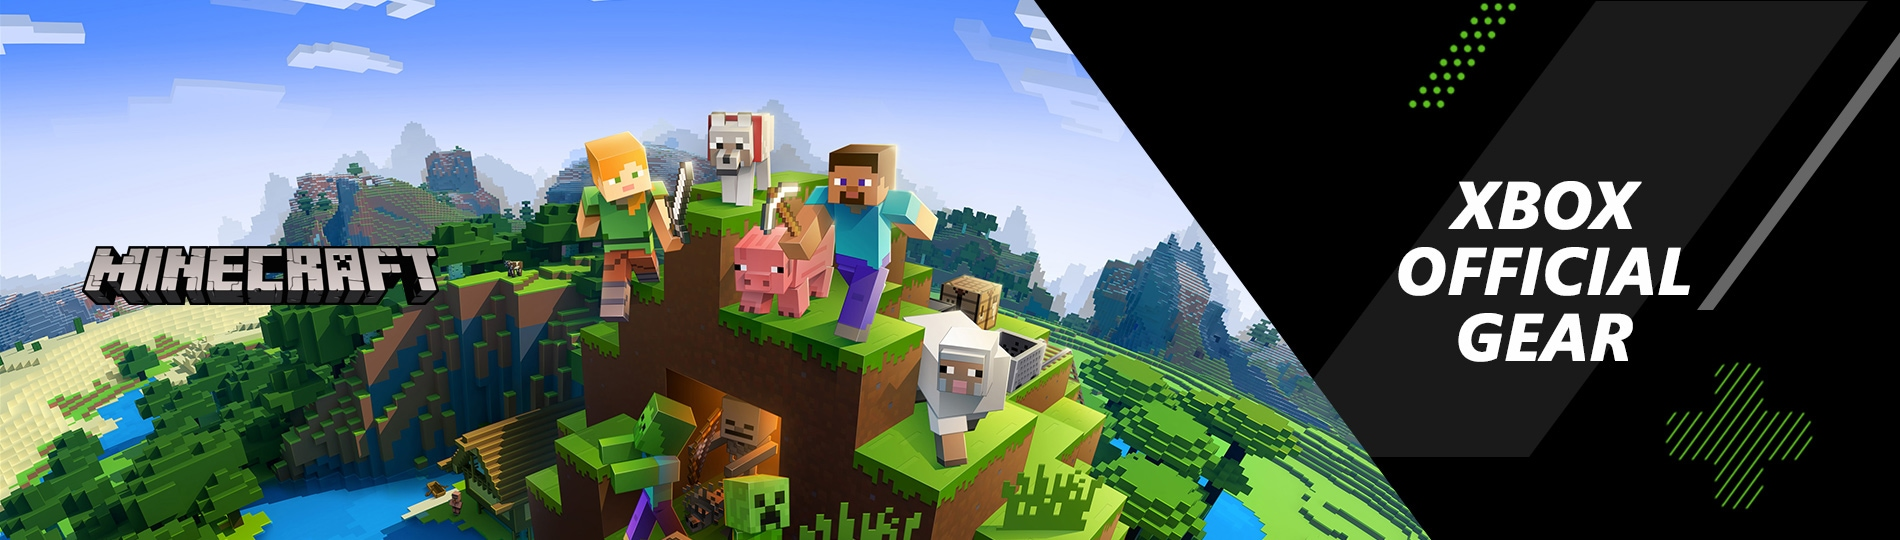 Buy Minecraft Merchandise Xbox Official Gear Microsoft